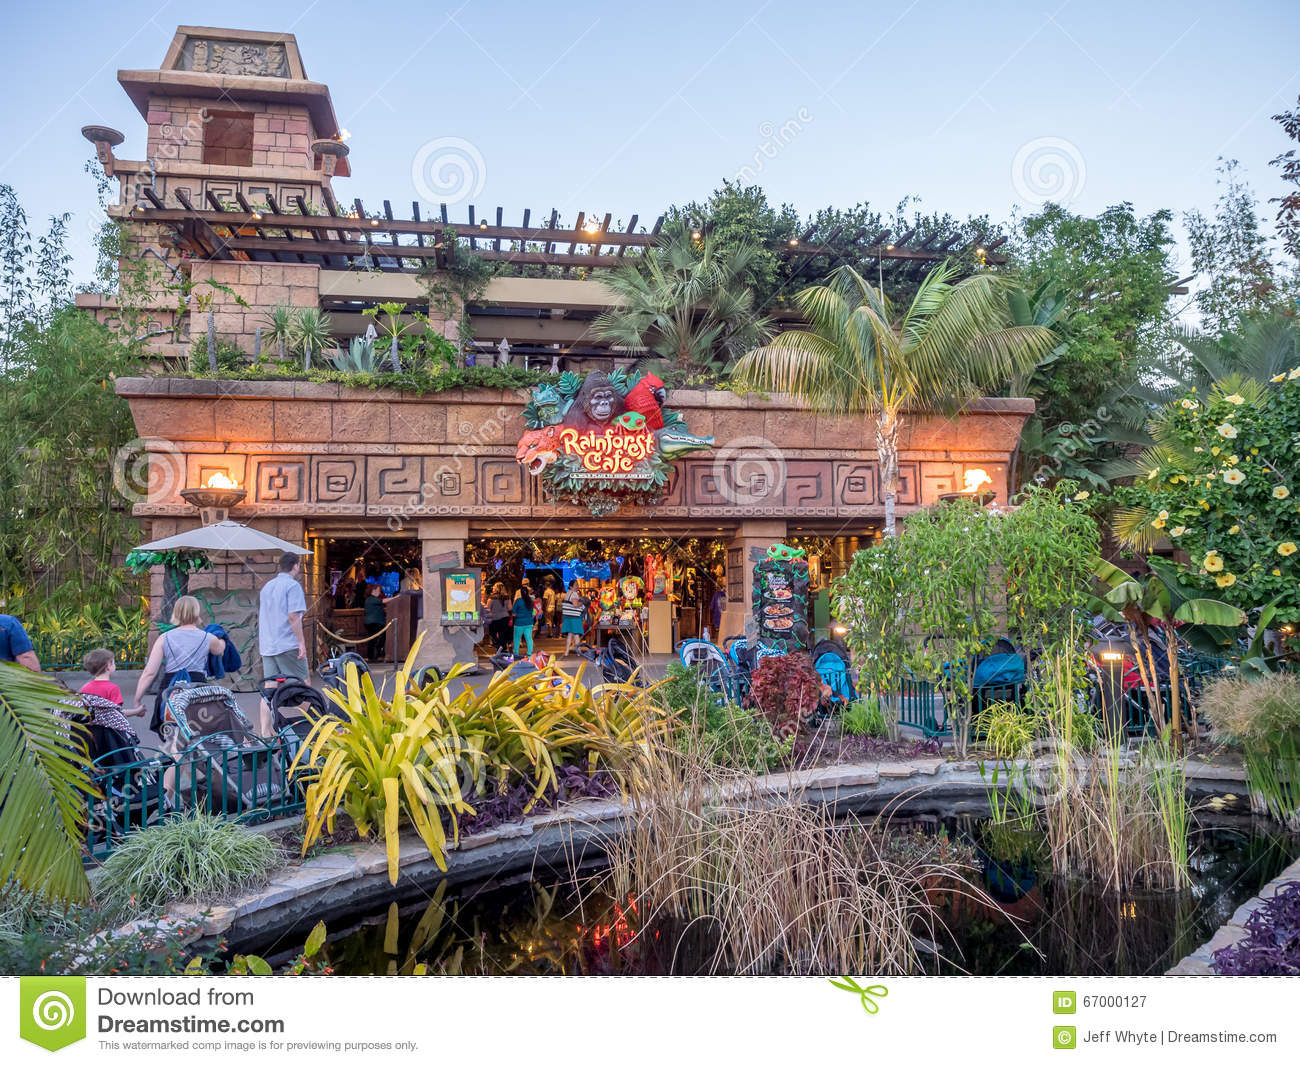 Downtown Disney Rainforest Cafe